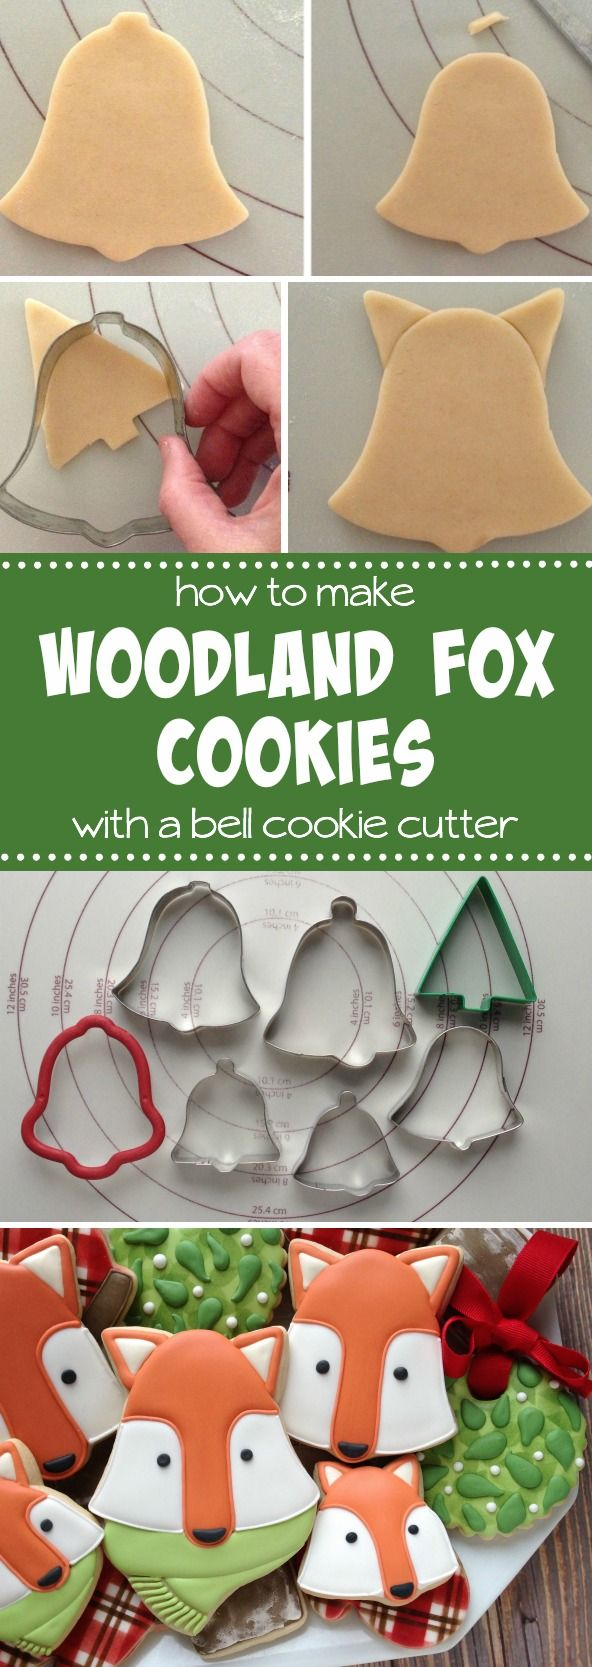 How to make woodland fox cookies with a bell cutter with Clough'D 9 Cookies via Sweetsugarbelle.com